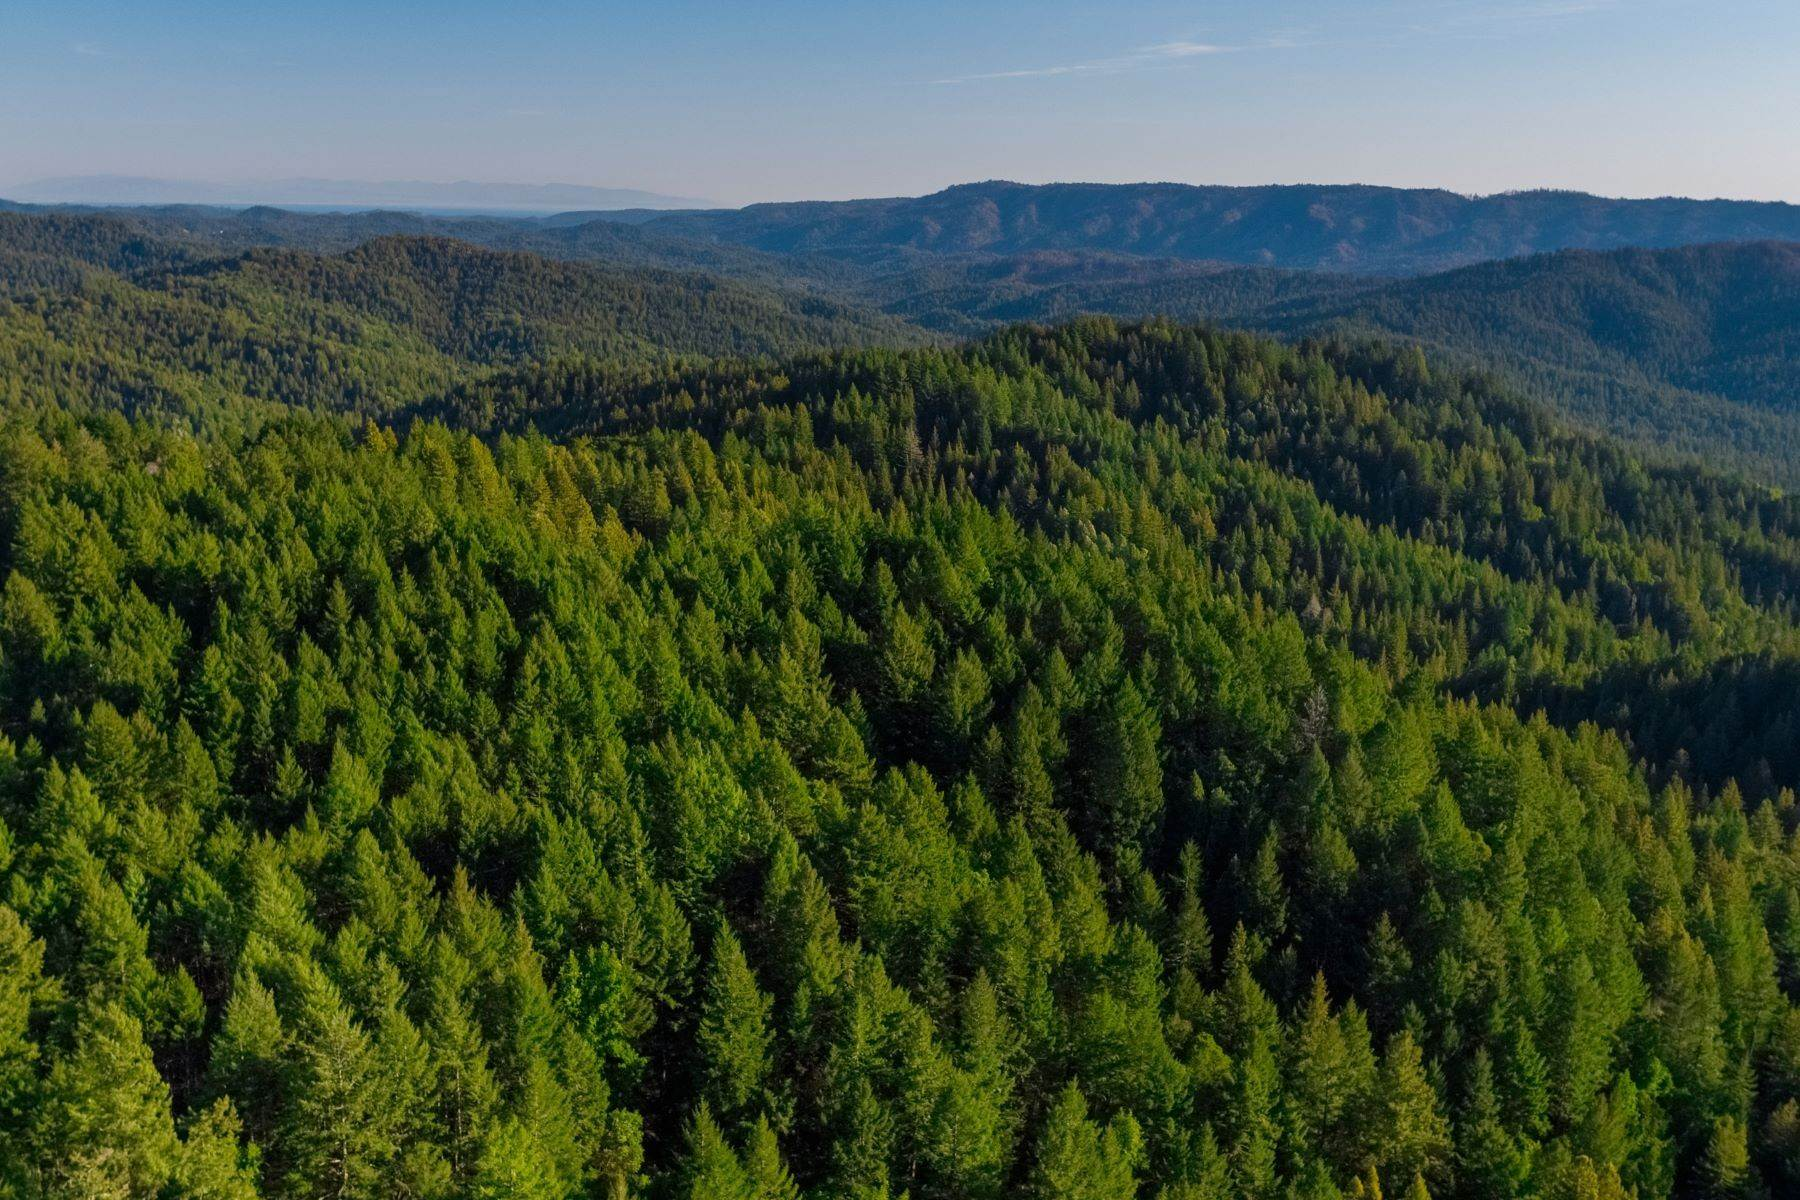 Property for Sale at Prime Santa Cruz Mountains Acreage 24021 Highway 9 Los Gatos, California 95033 United States